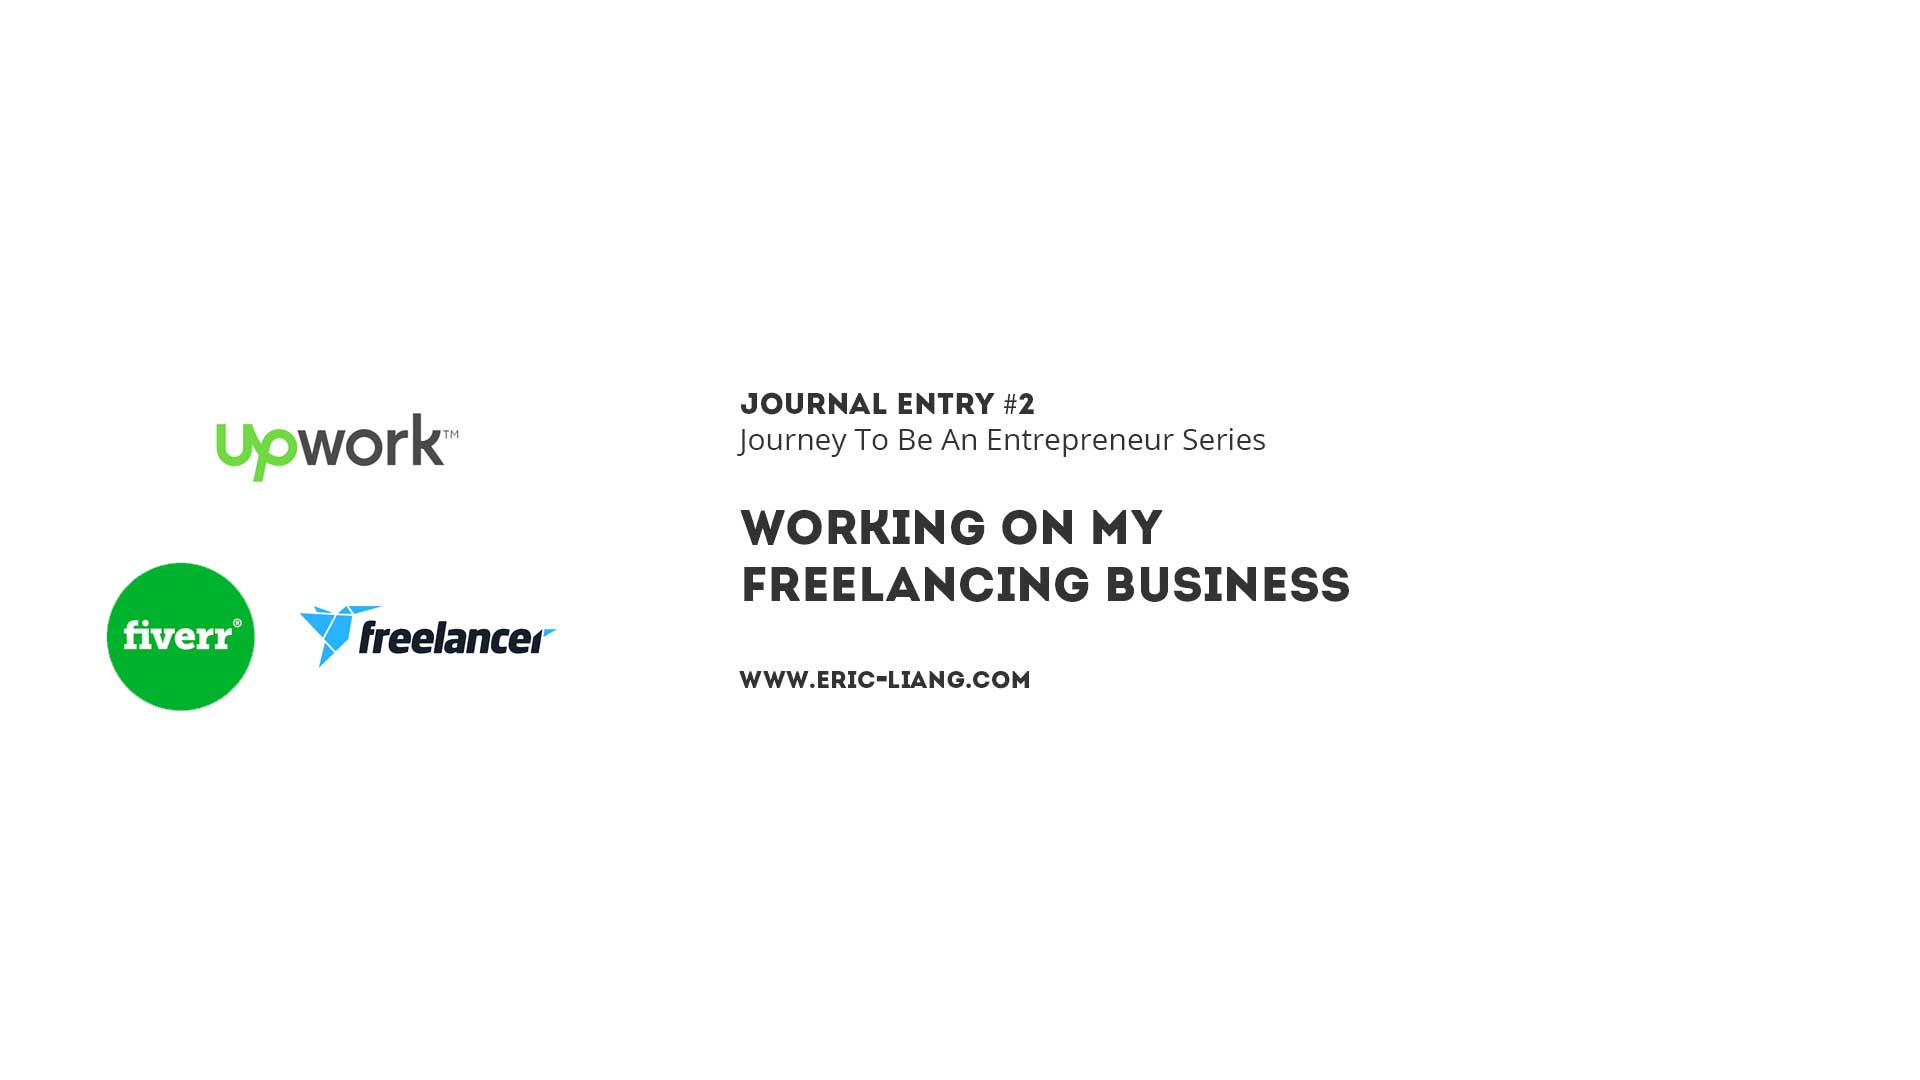 Journal Entry 2: Working On My Freelancing Business